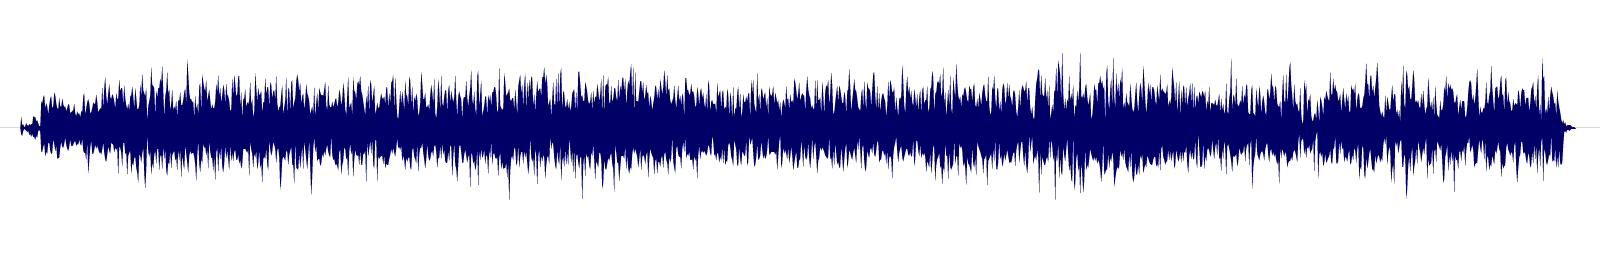 waveform of track #103545